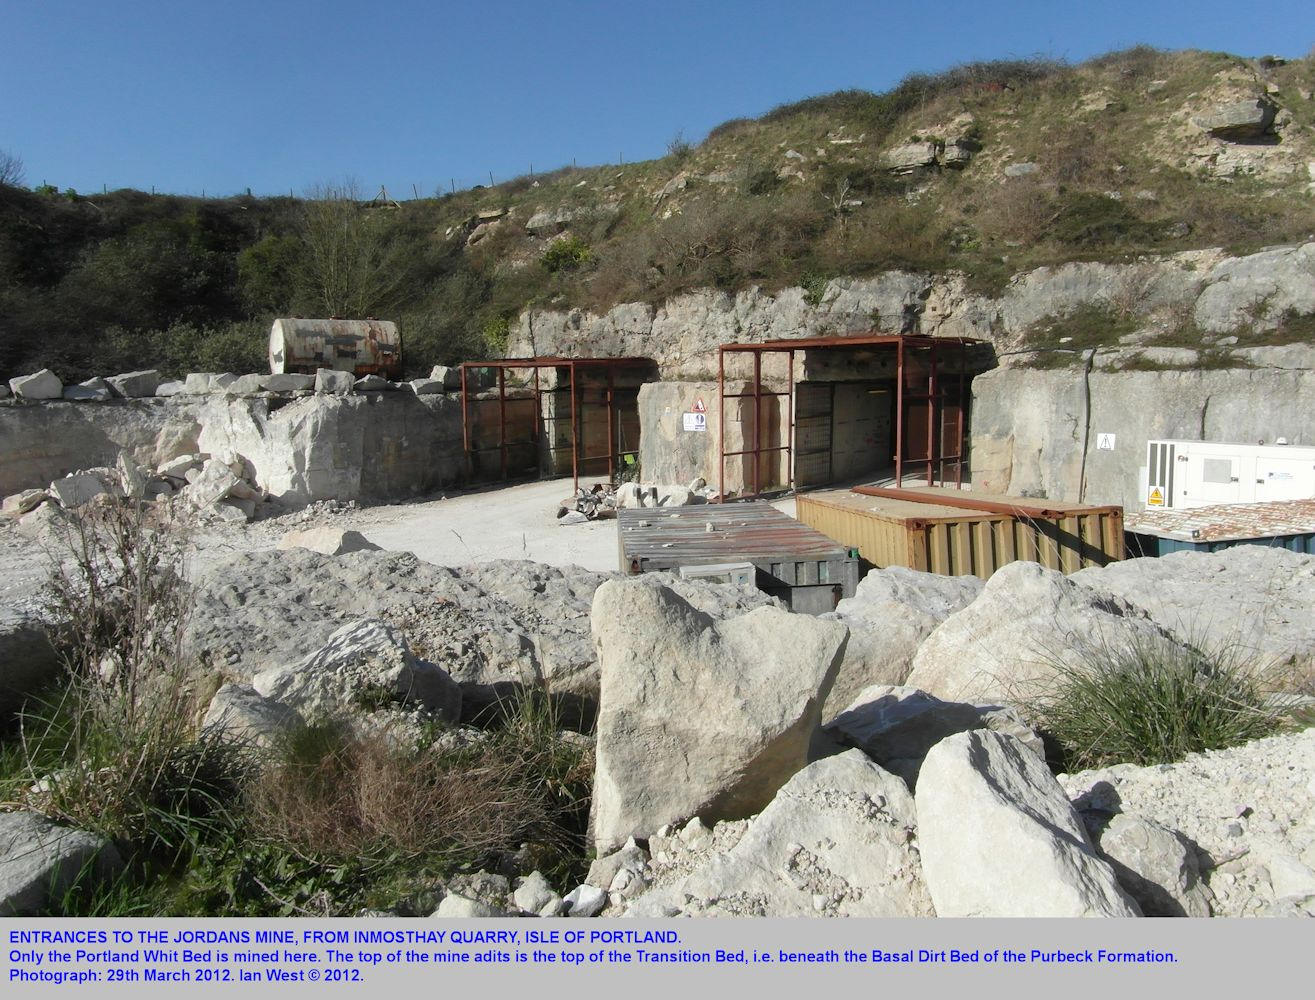 The entrance area of Jordans Mine, next to Inmosthay Quarries, Isle of Portland, Dorset, 29th March 2012